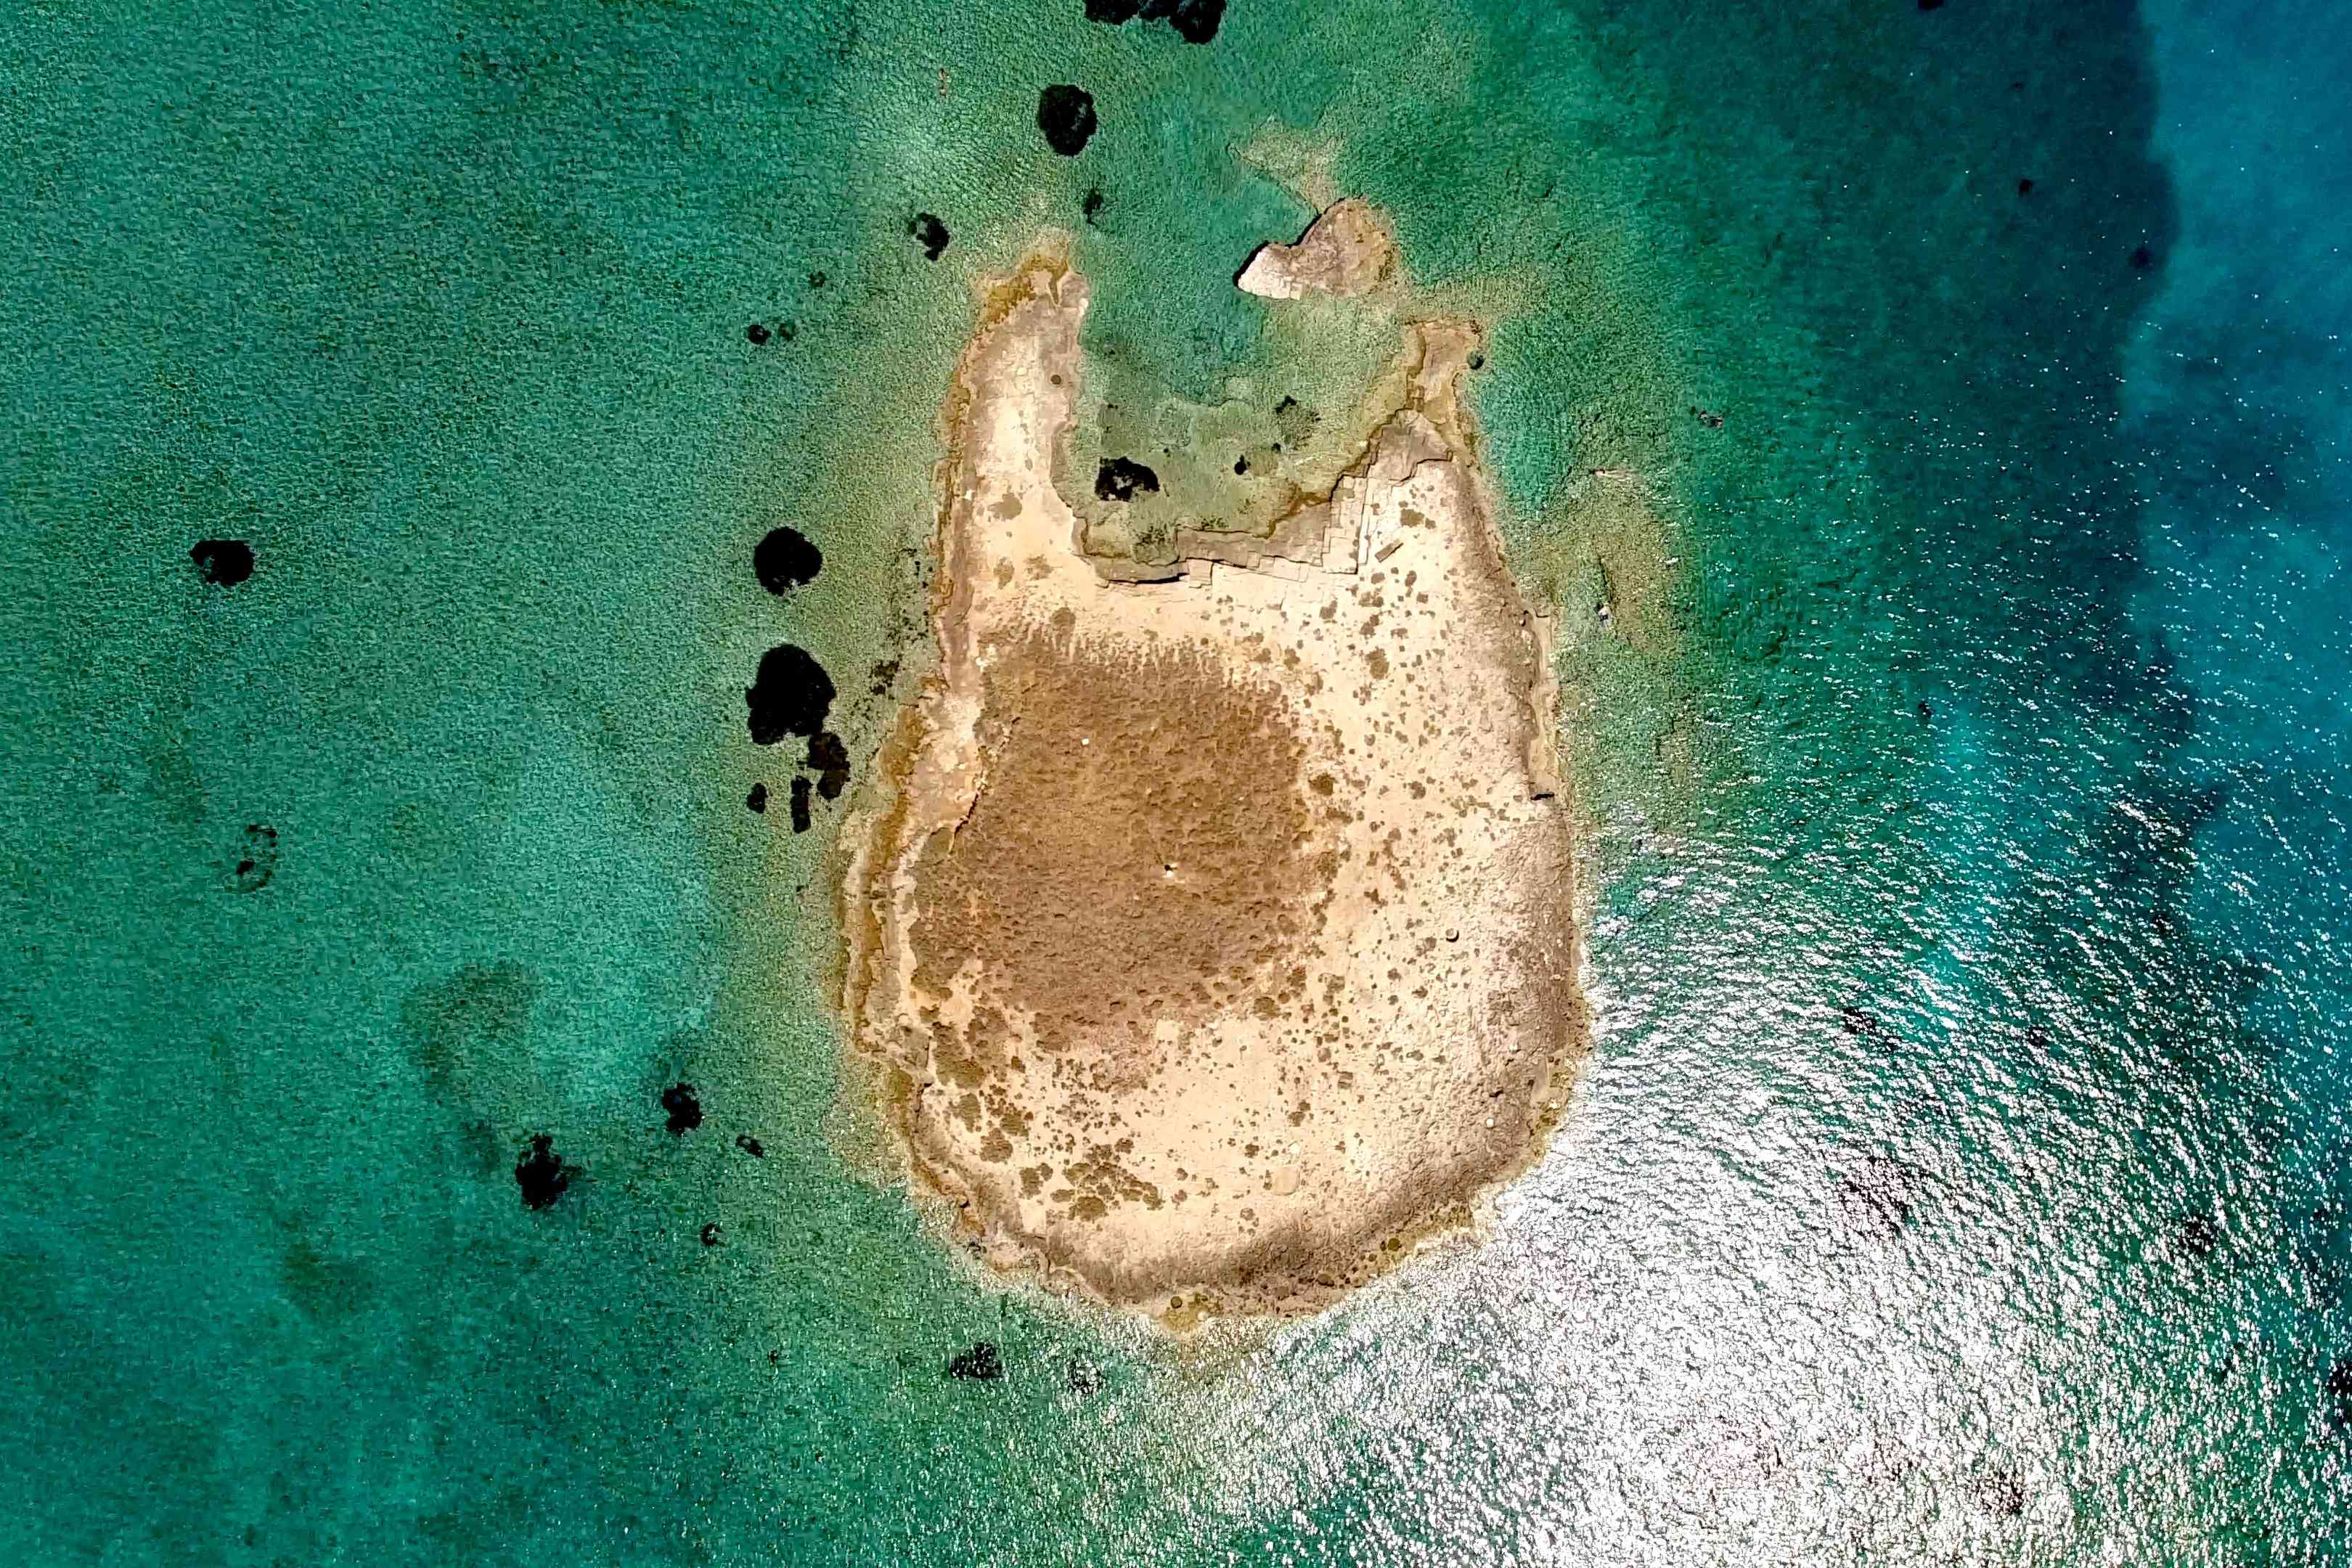 Drone shot of an island and sea containing submerged city